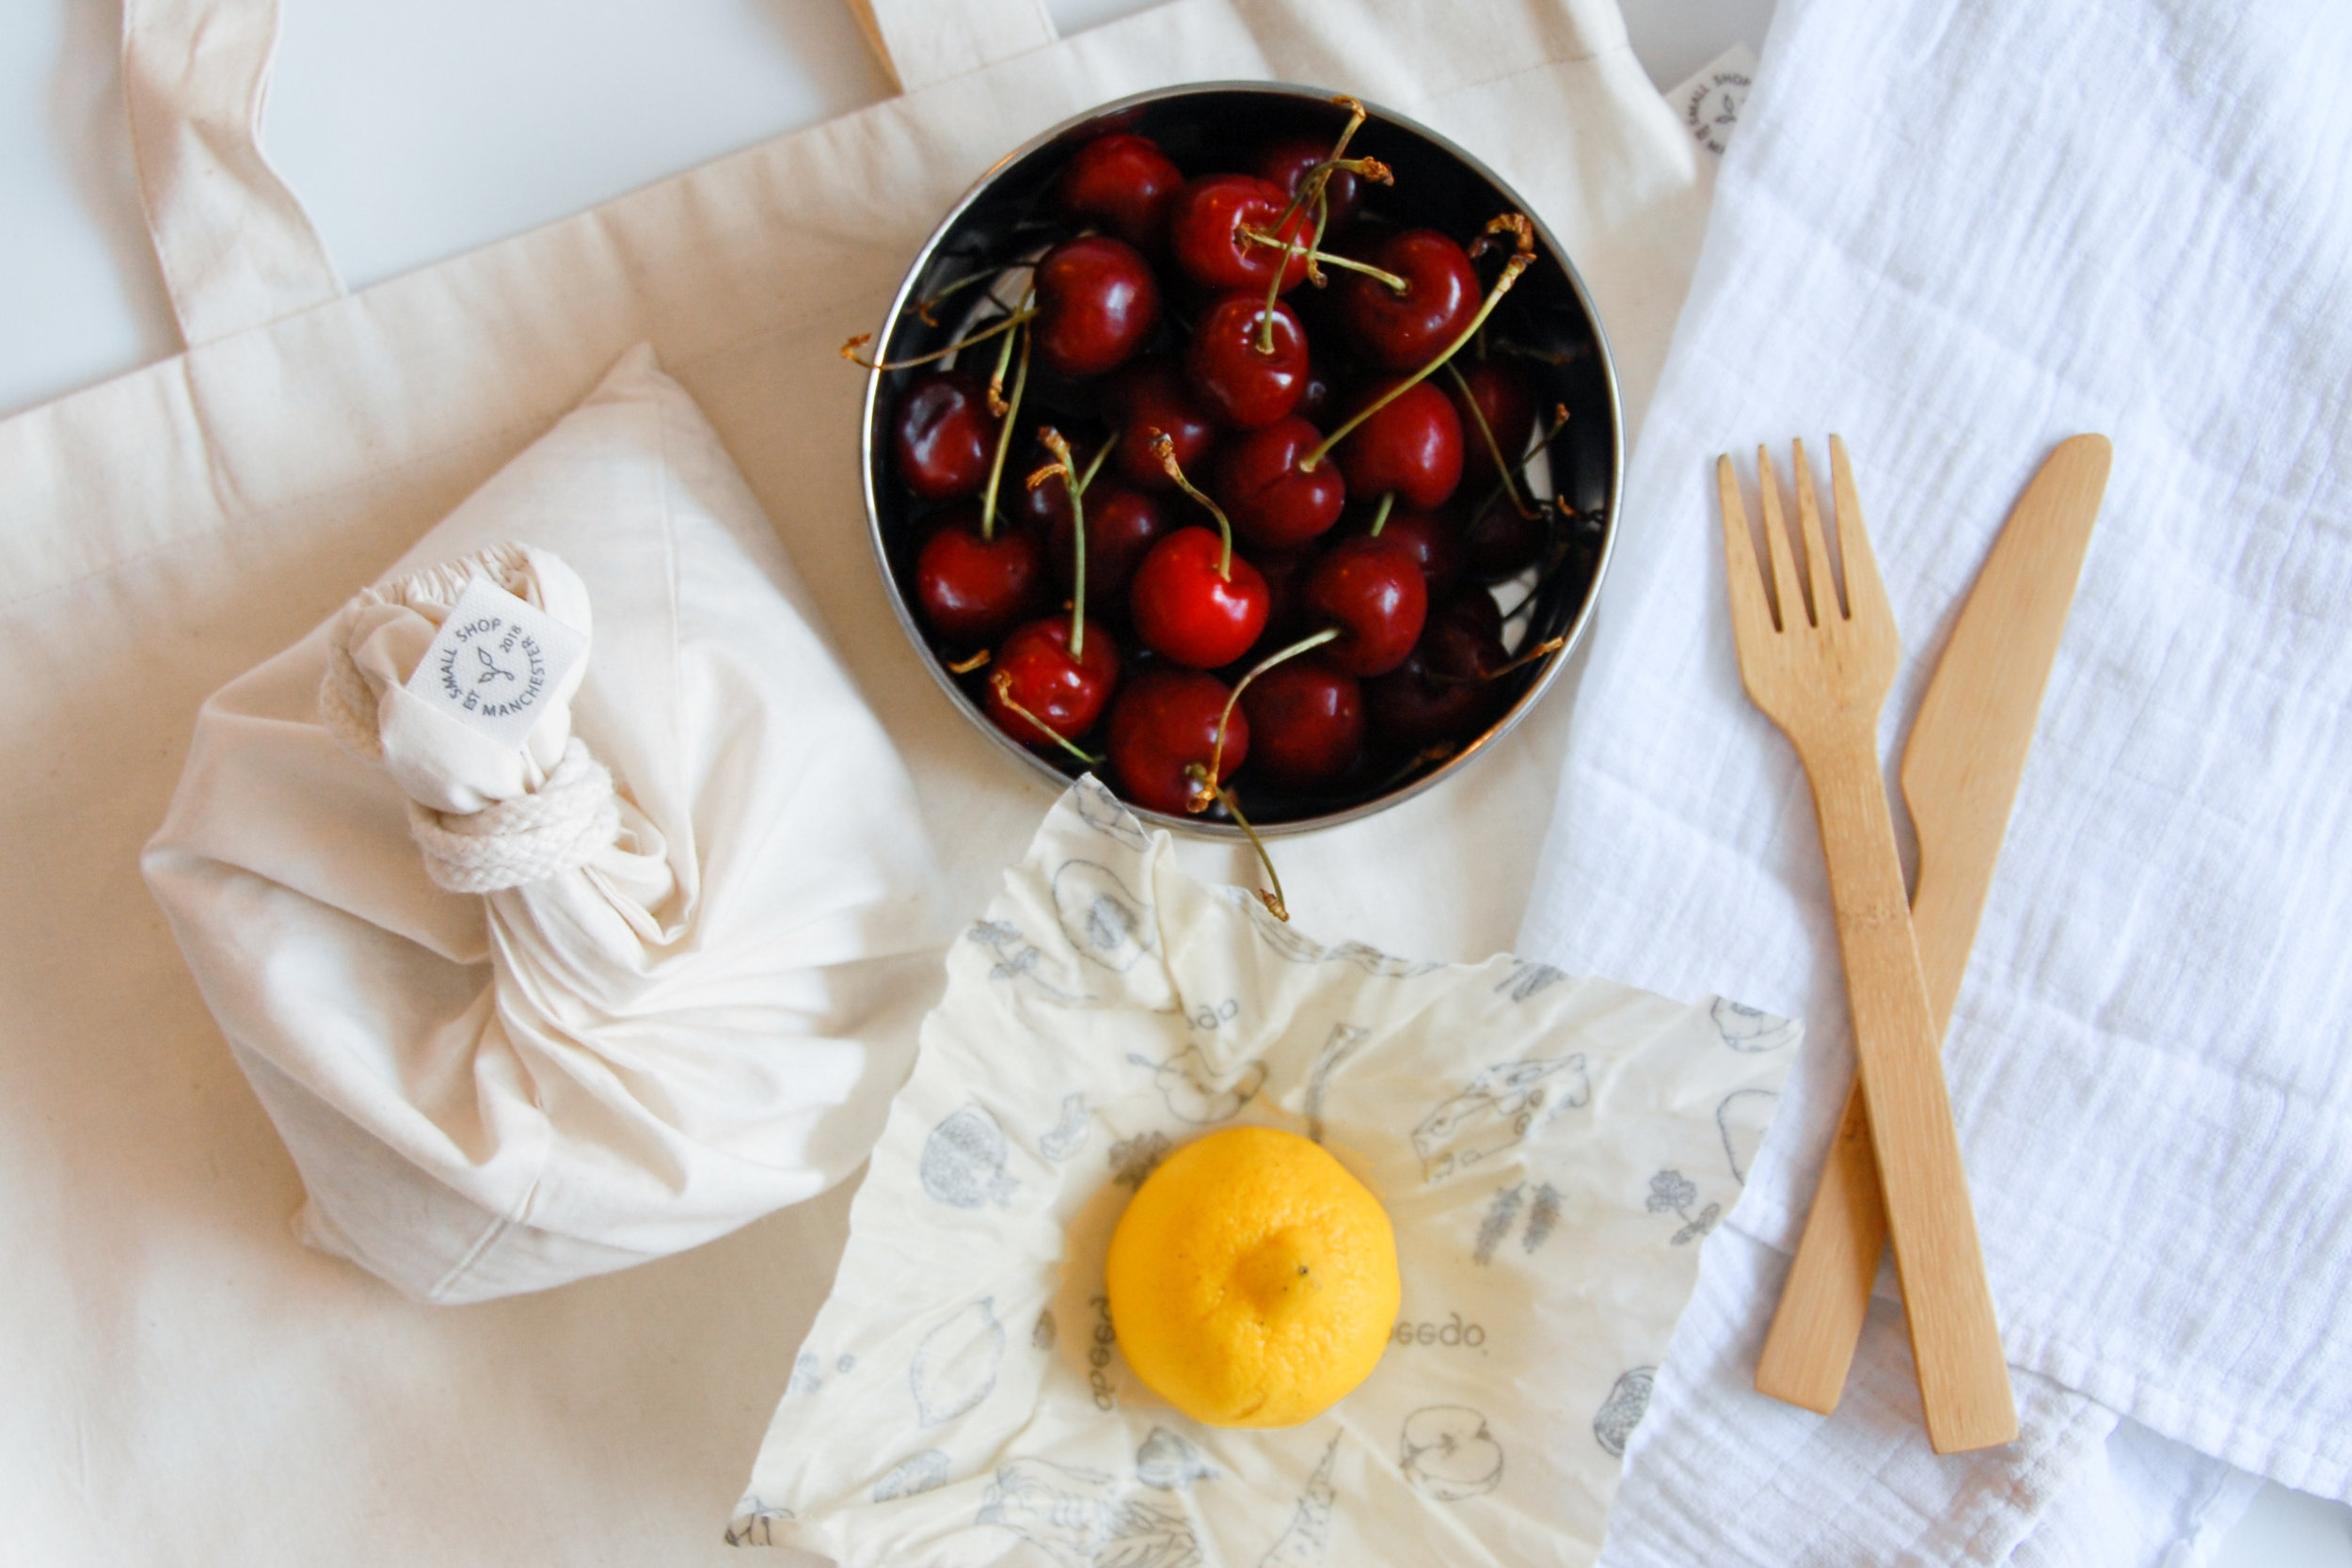 Four Easy Ways to Go Plastic Free - Going zero waste doesn't have to be stressful. There are small changes you can make every day to drastically reduce your waste, from bringing your own cutlery to using beeswax food wraps!